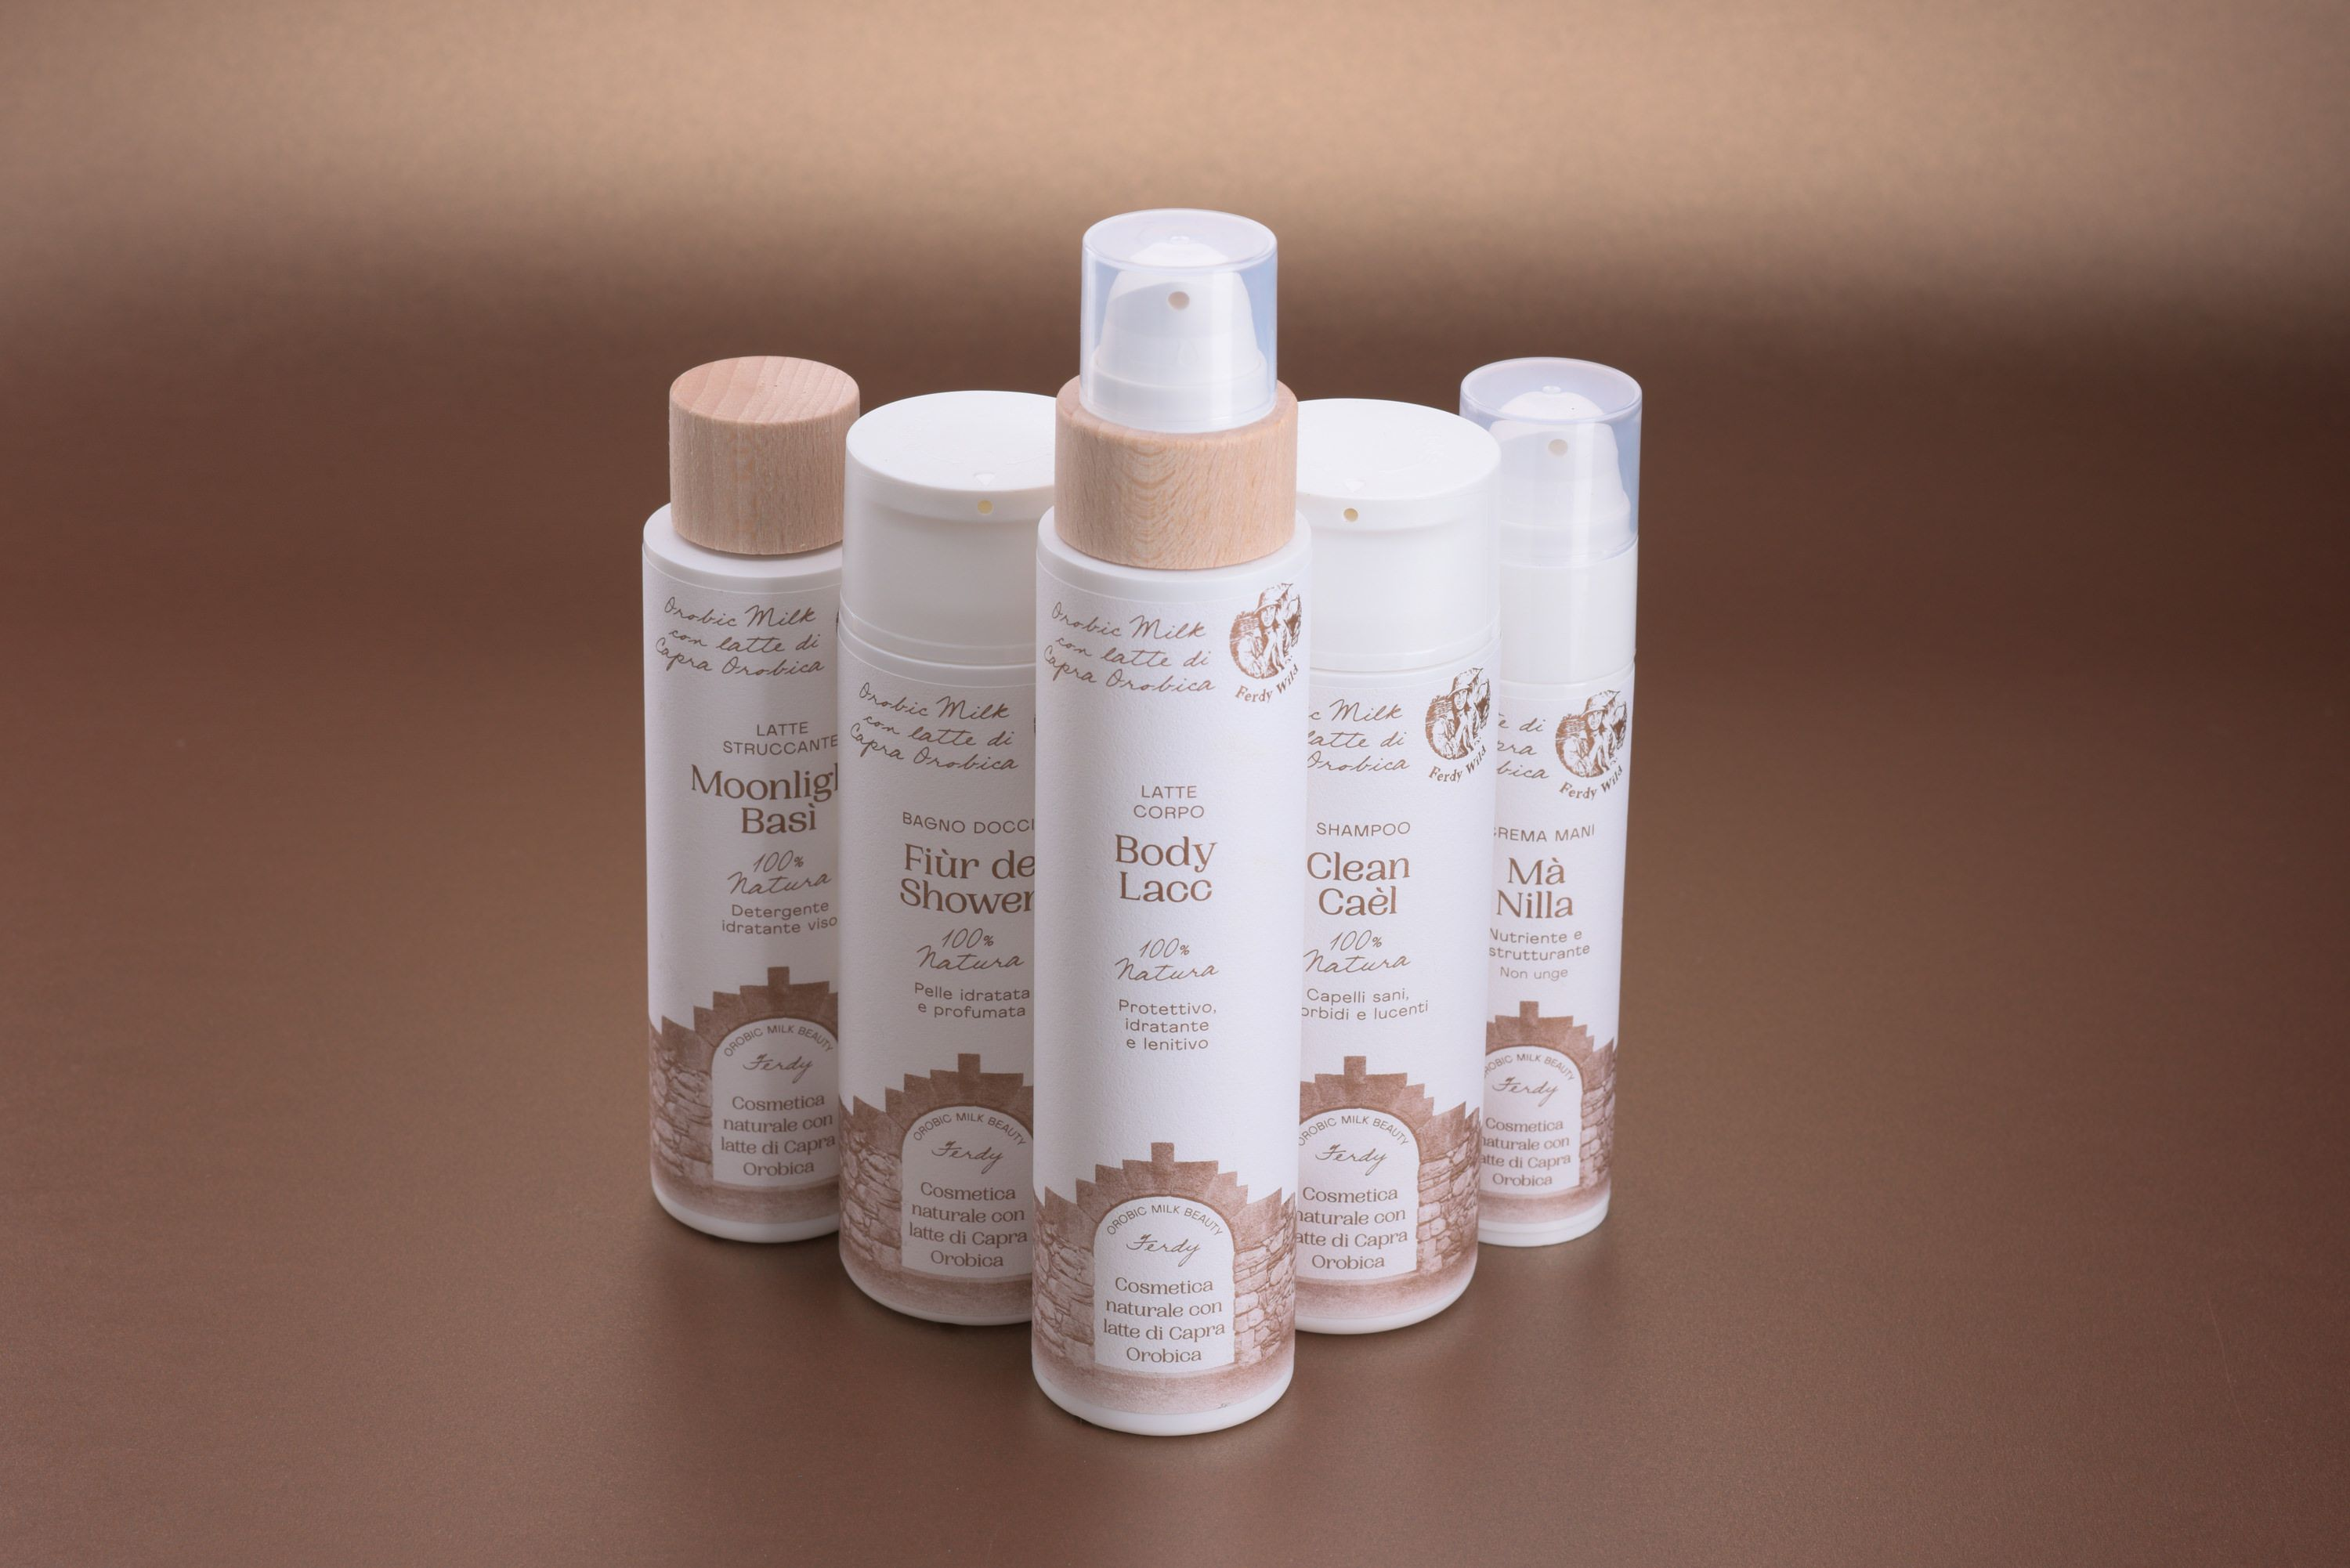 Orobic Milk Beauty New Cosmetics Packaging Sustainable